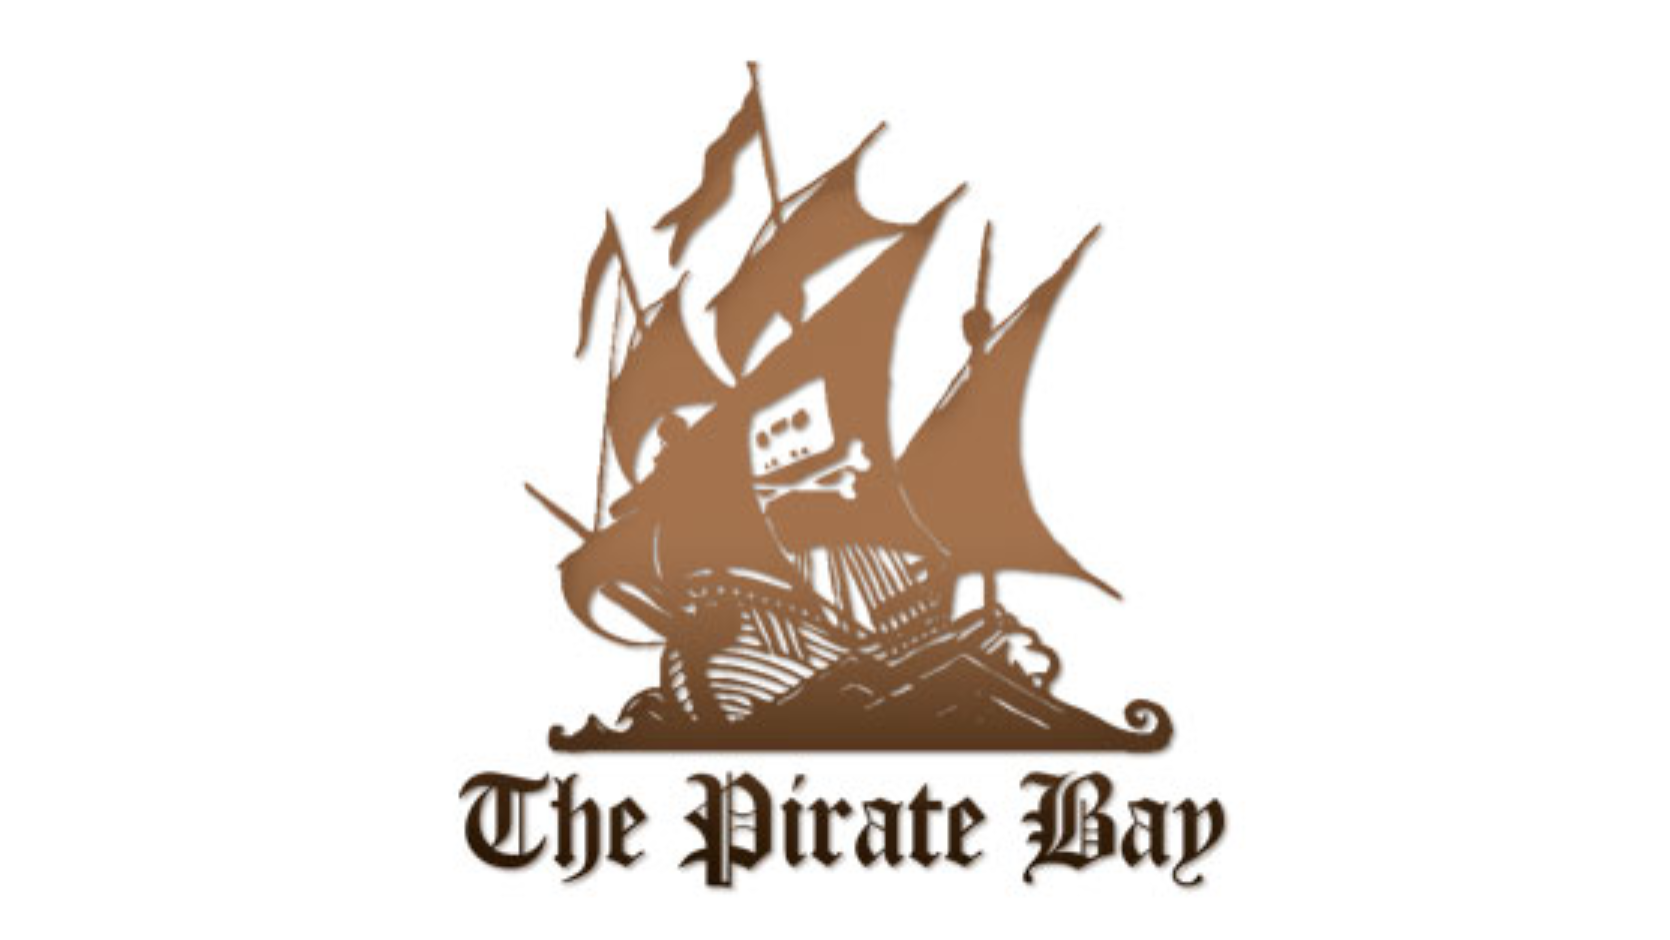 You Can Stream Torrents Through The Pirate Bay Once Again